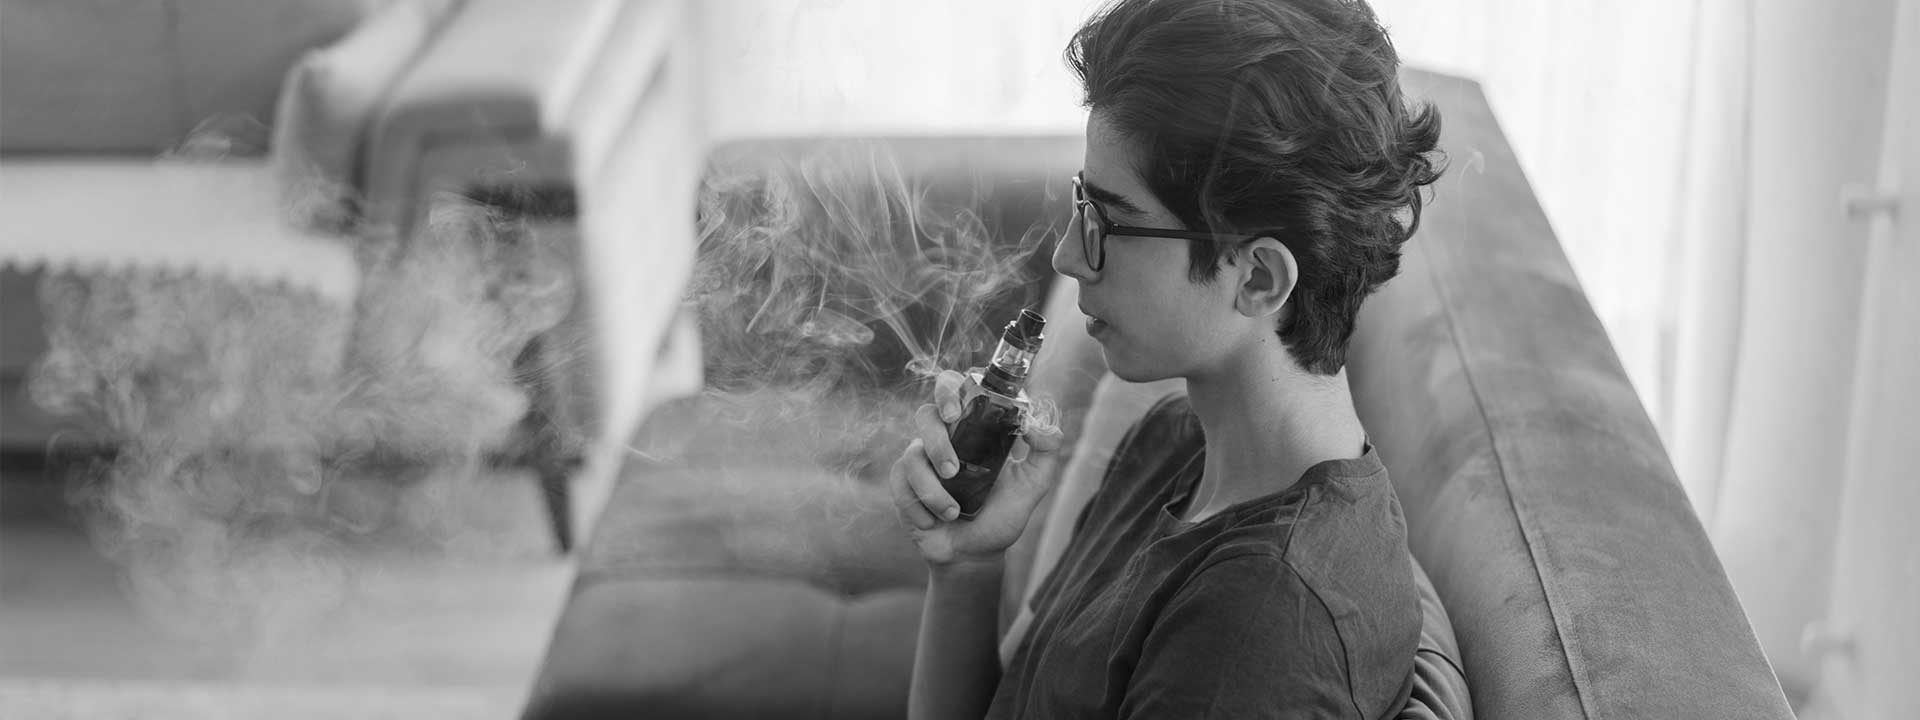 One young teenager vaping at home